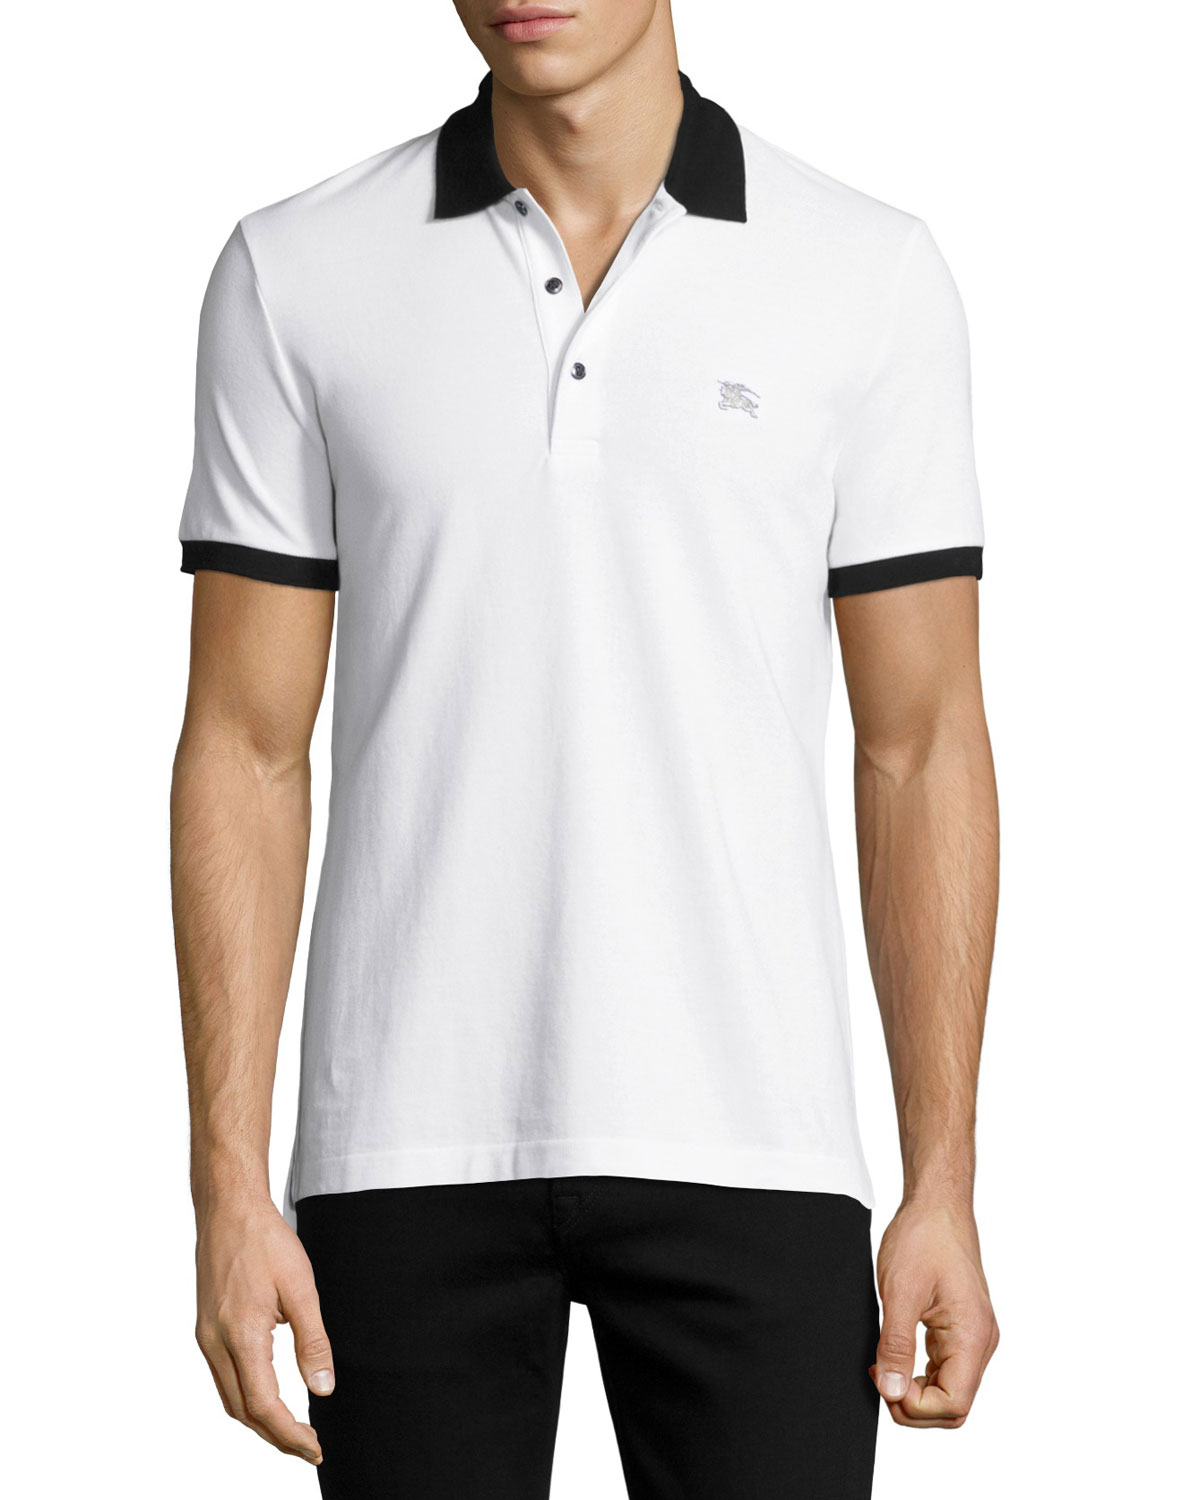 Camberwell Contrast-Trim Cotton Piqué Polo Shirt, Black/White